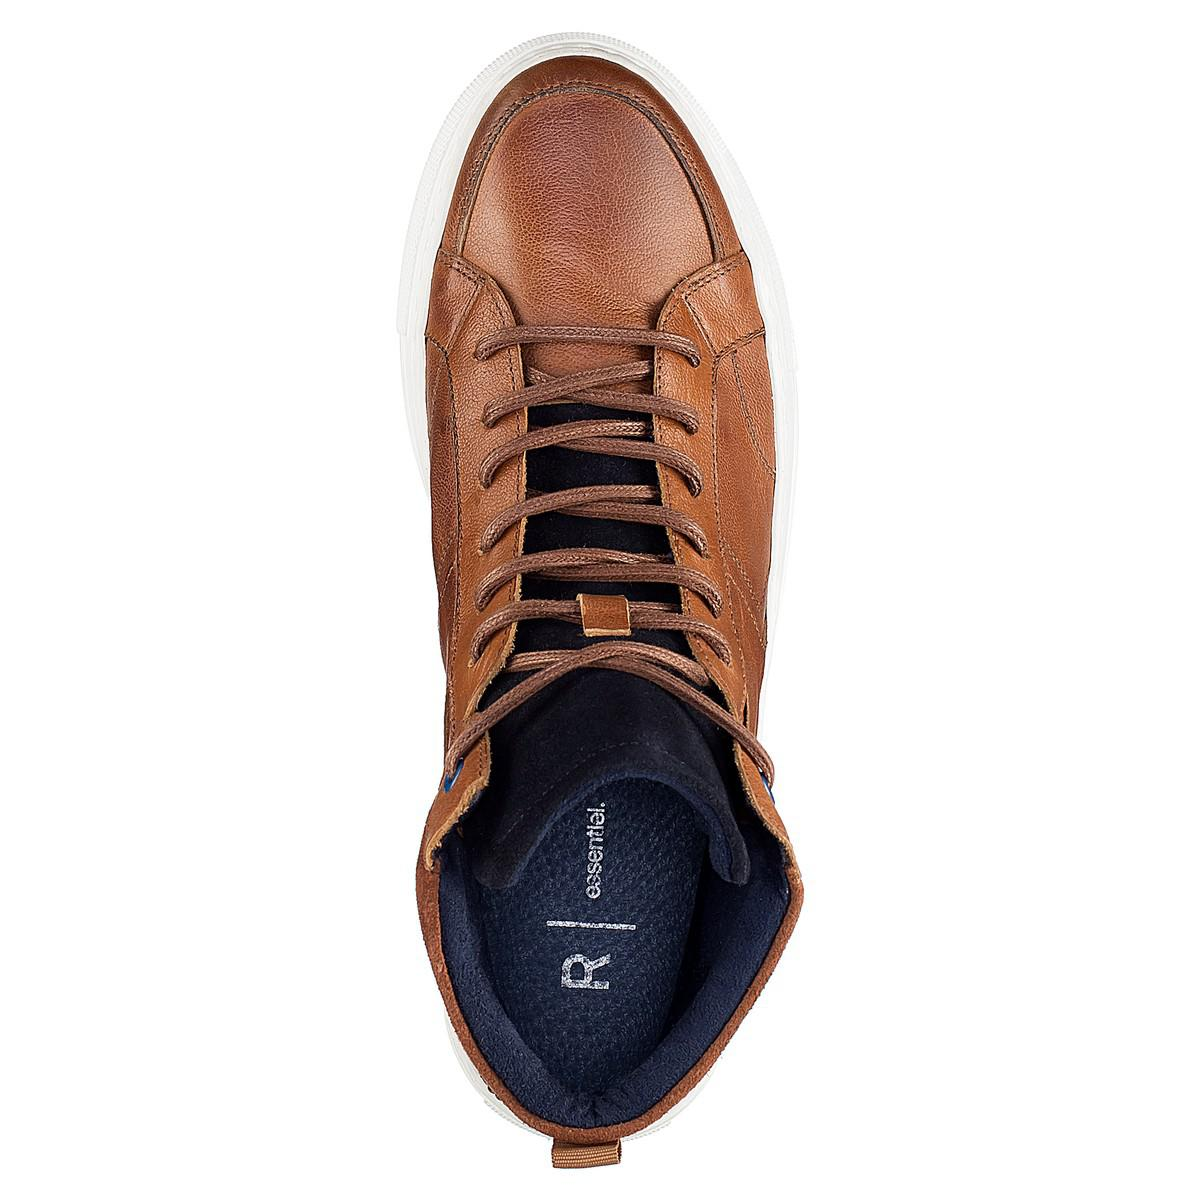 d2b059232a521 Lyst - La Redoute Chah 17 Leather Lace-up High Top Trainers in Brown ...